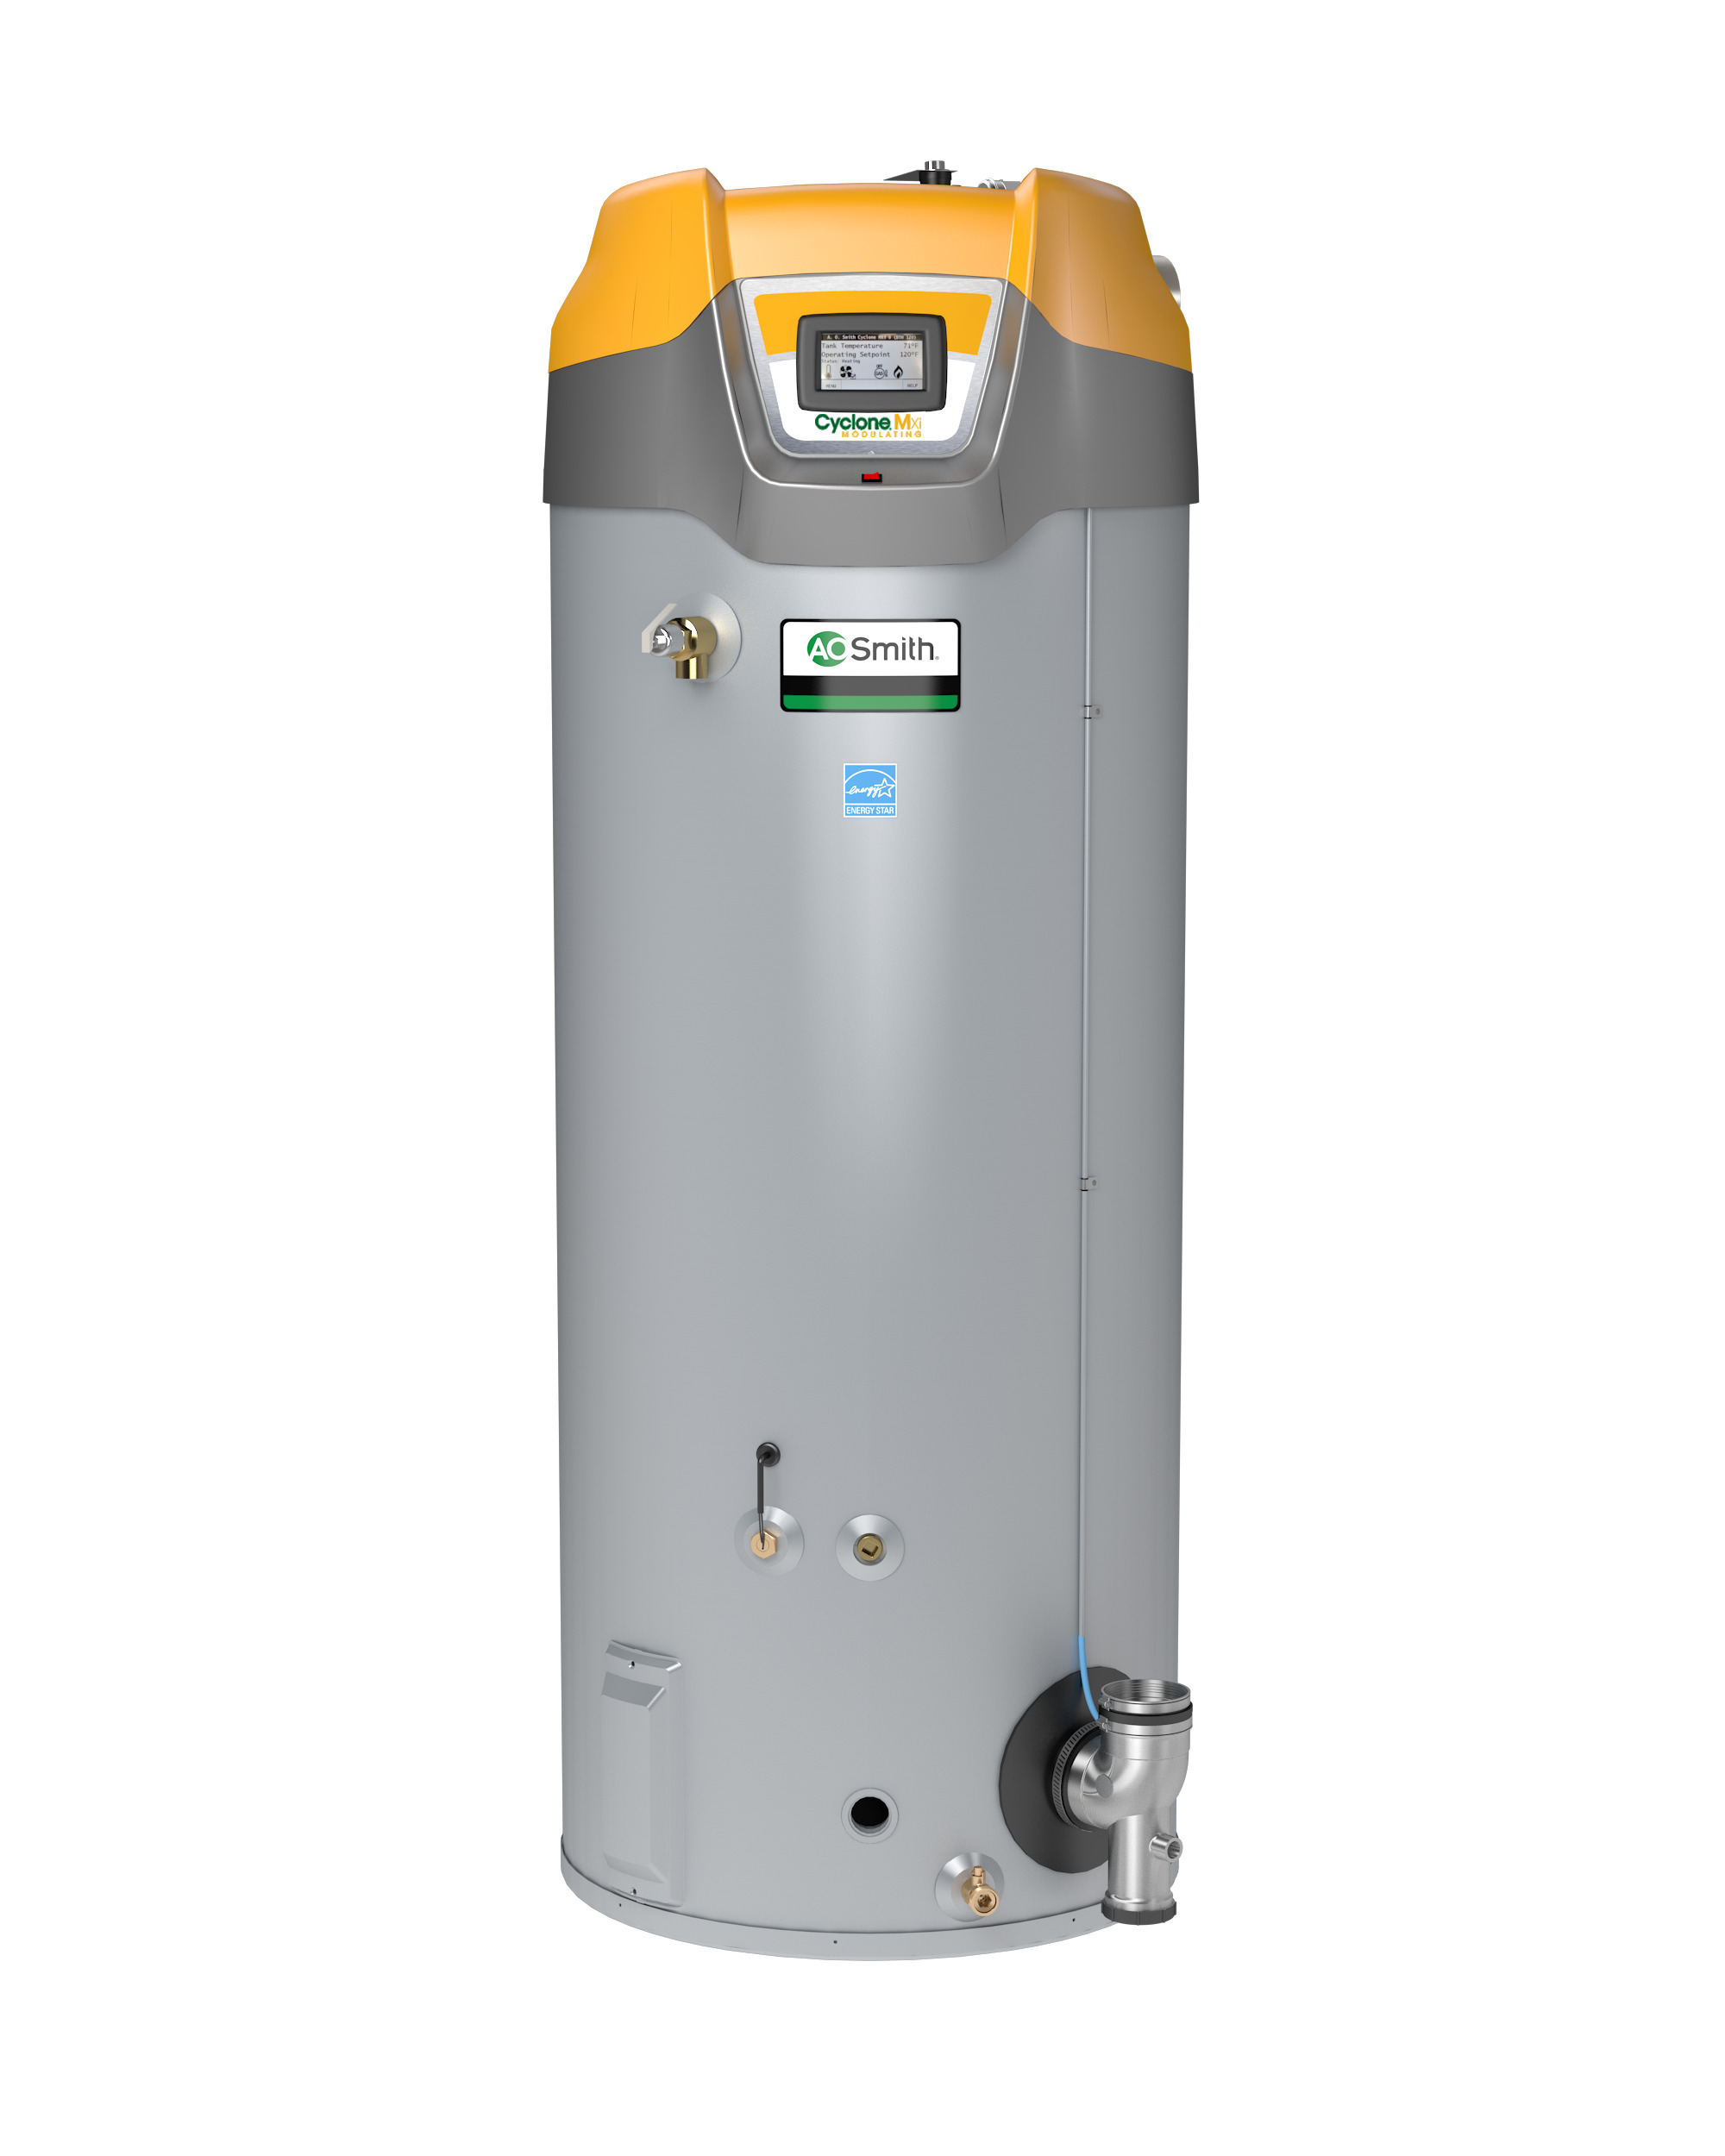 AO SMITH BTH-250A-LP: 100 GALLON, 240,000-BTU, UP TO 96% THERMAL EFFICIENCY, ASME, 3inch VENT, LP (LIQUID PROPANE) CYCLONE Mxi MODULATING COMMERCIAL GAS WATER HEATER